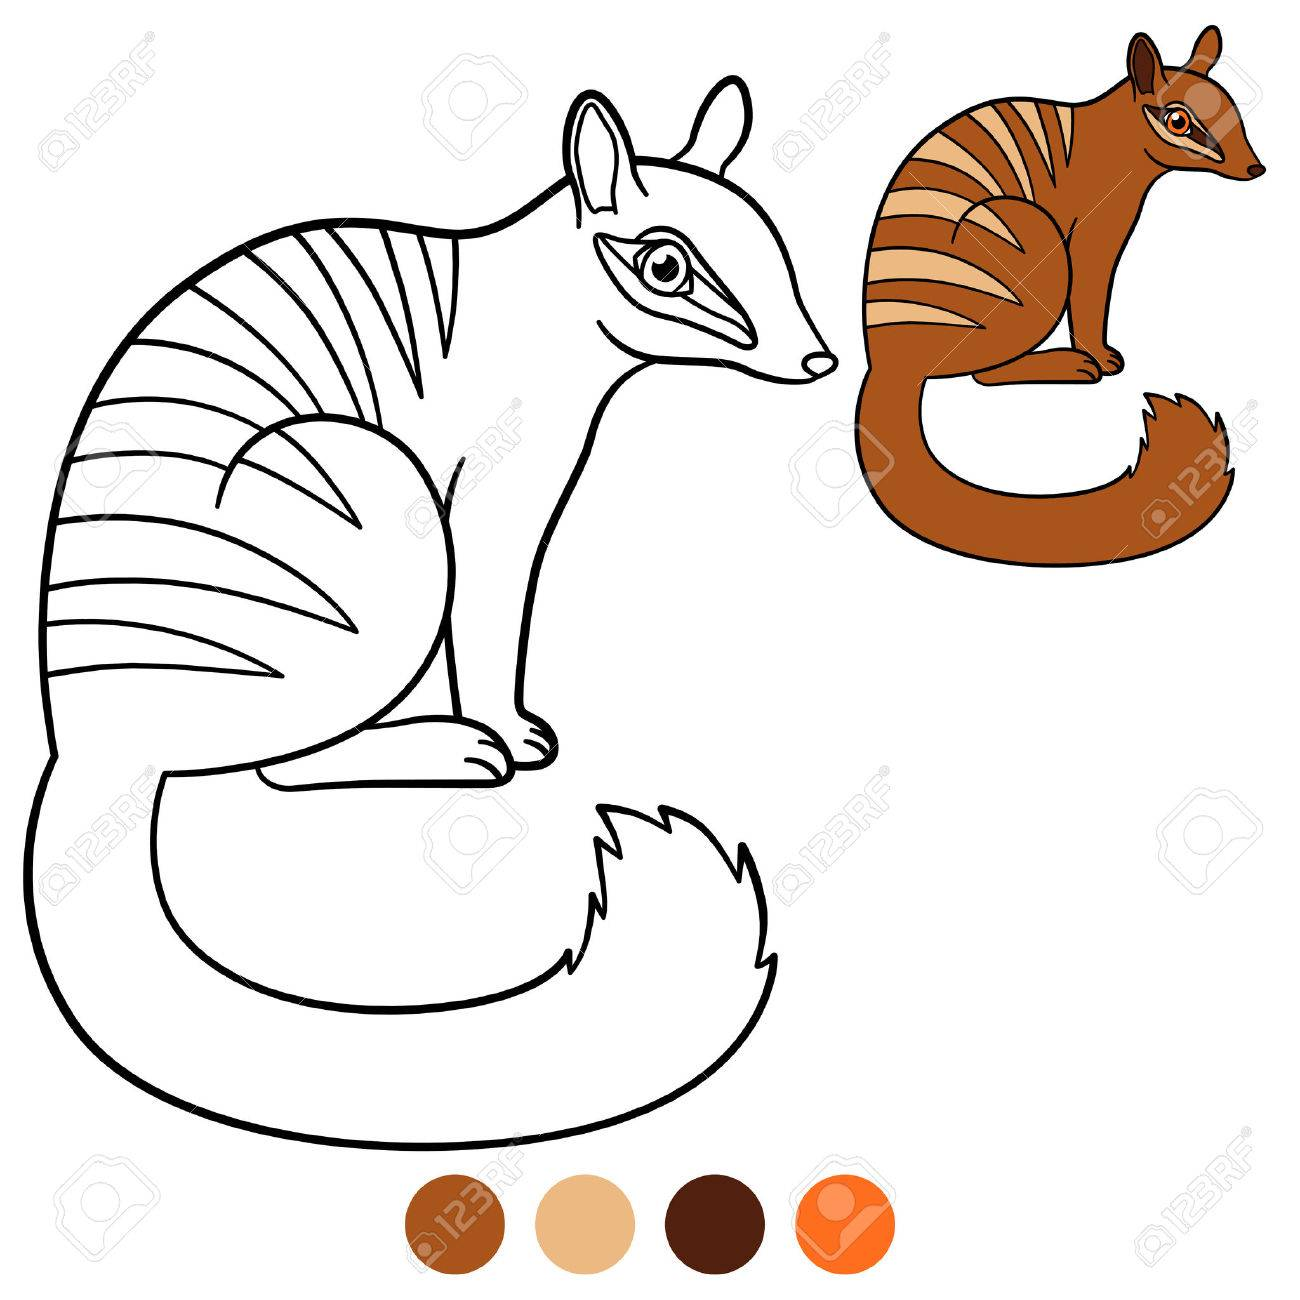 Coloring Page. Little Cute Numbat Sits And Smiles. Stock Vector   83312003